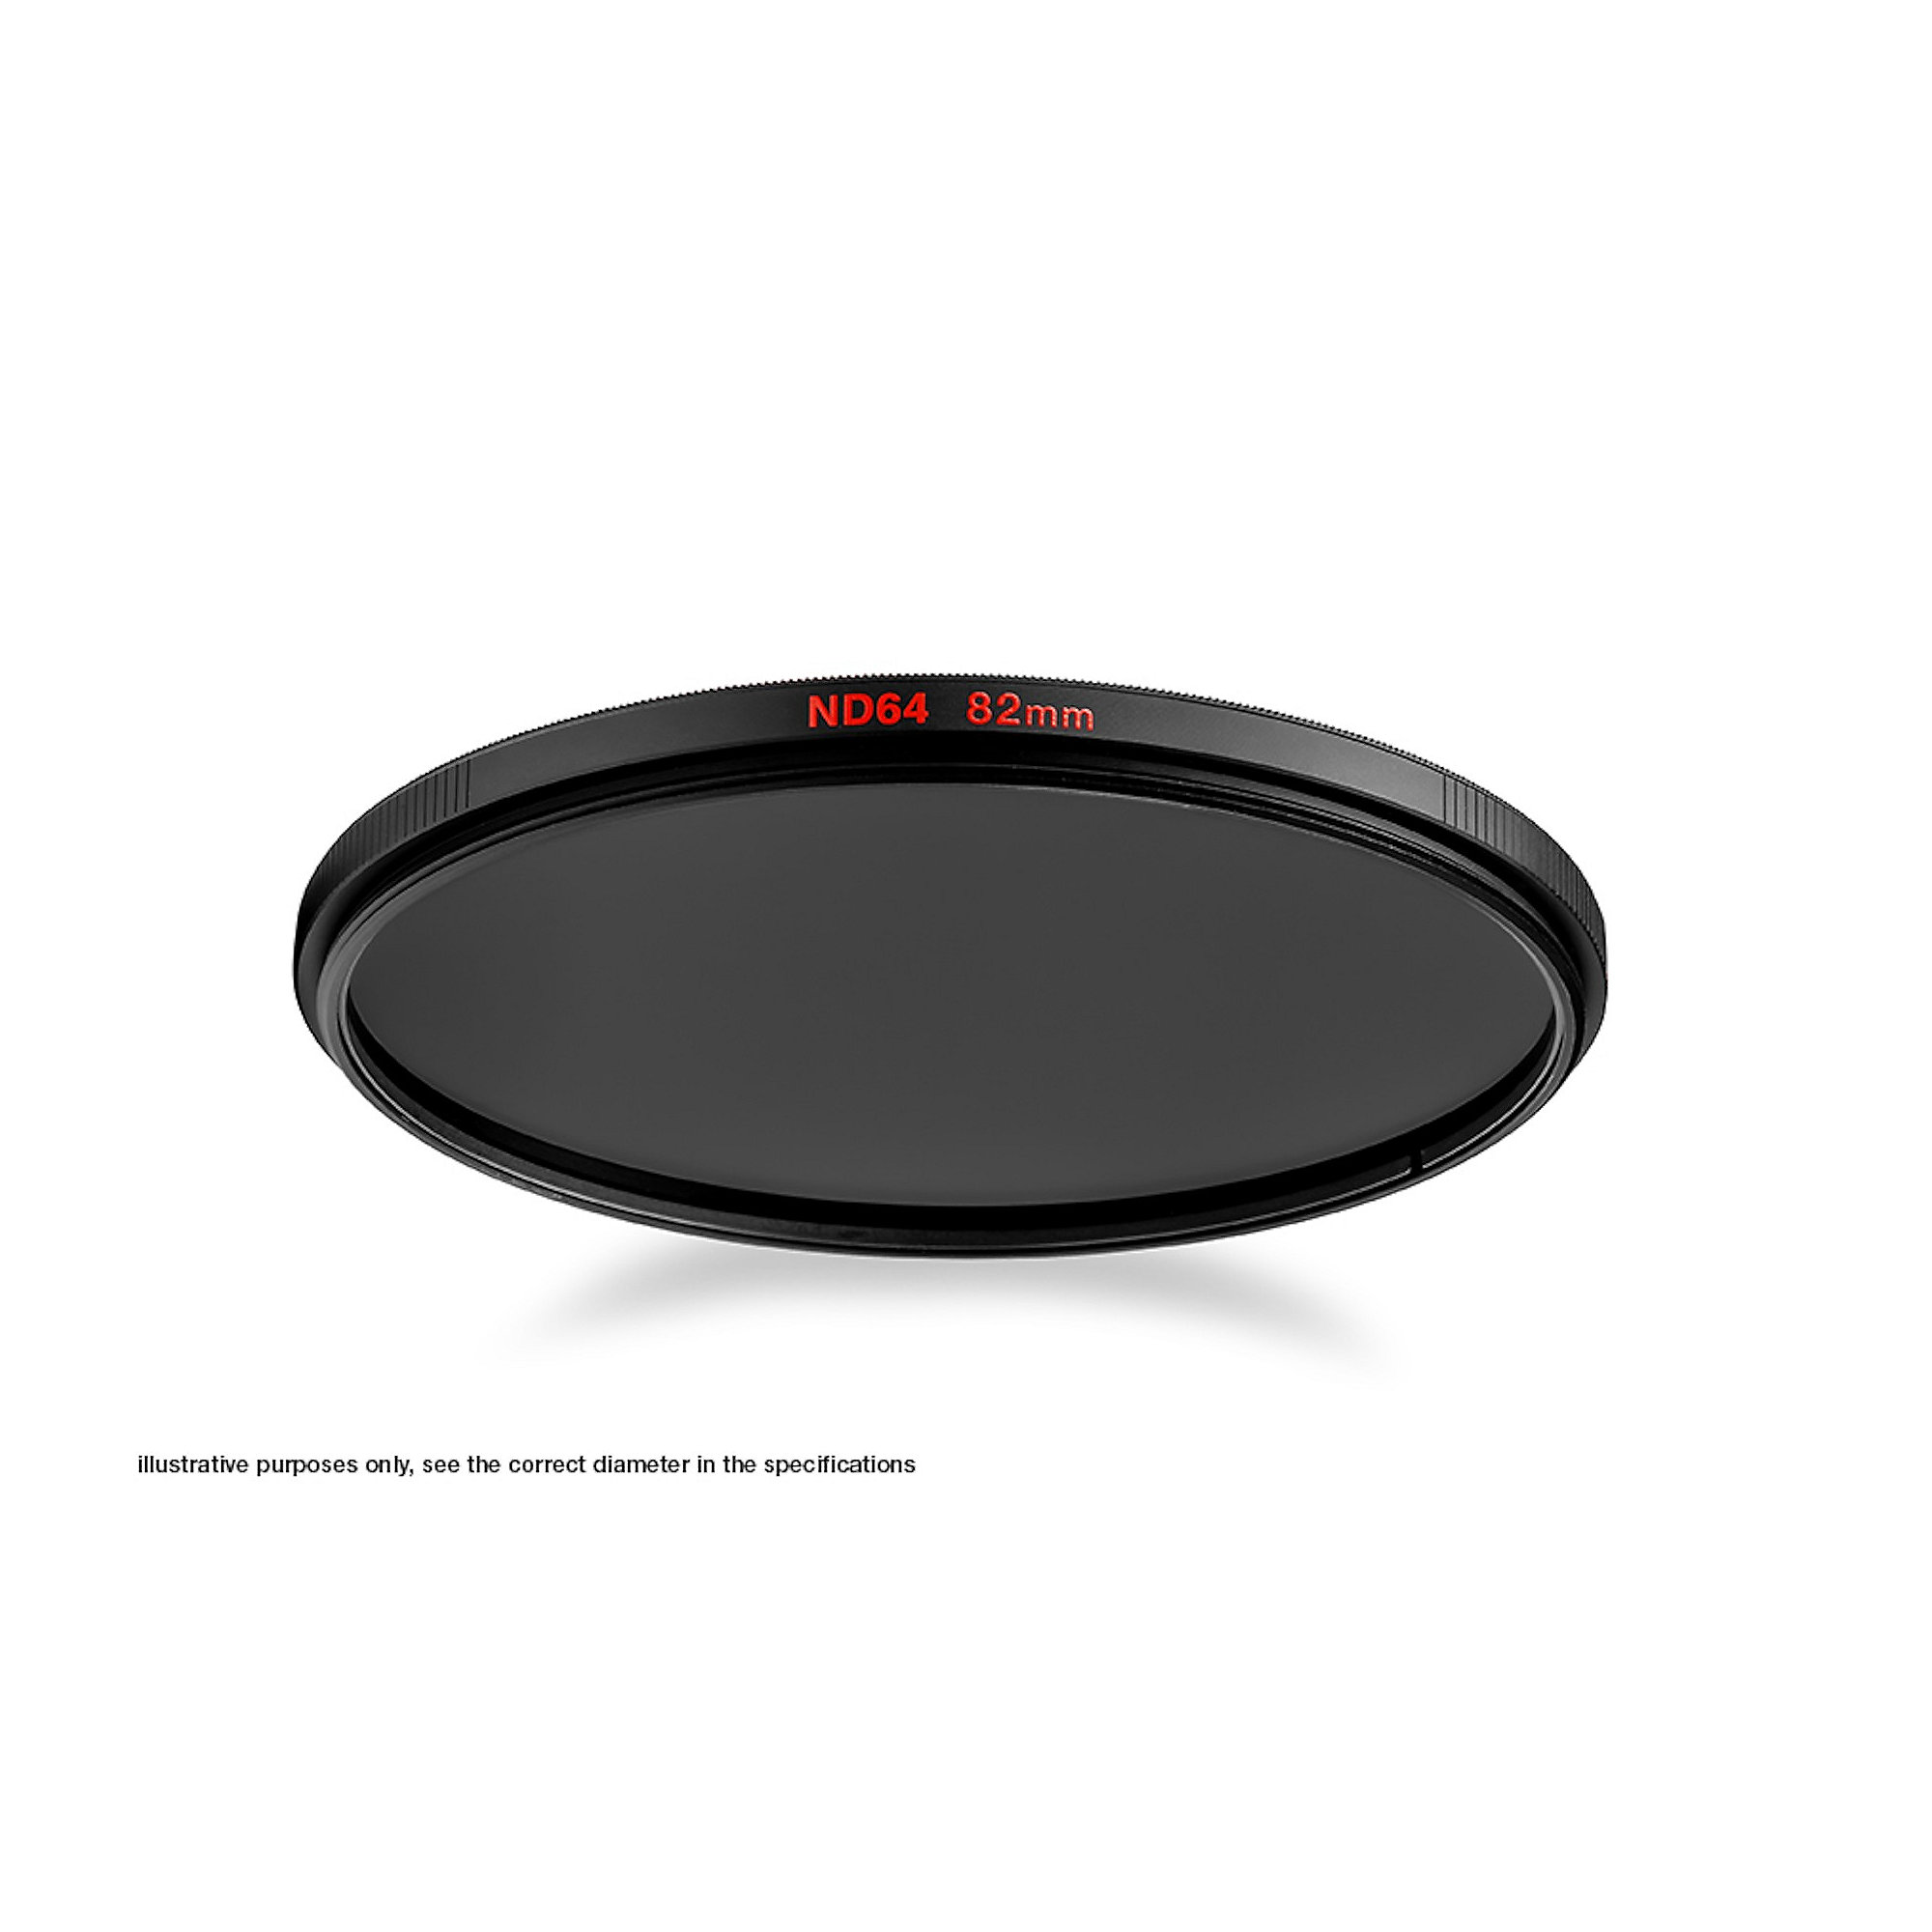 Manfrotto ND64 Graufilter 52 mm